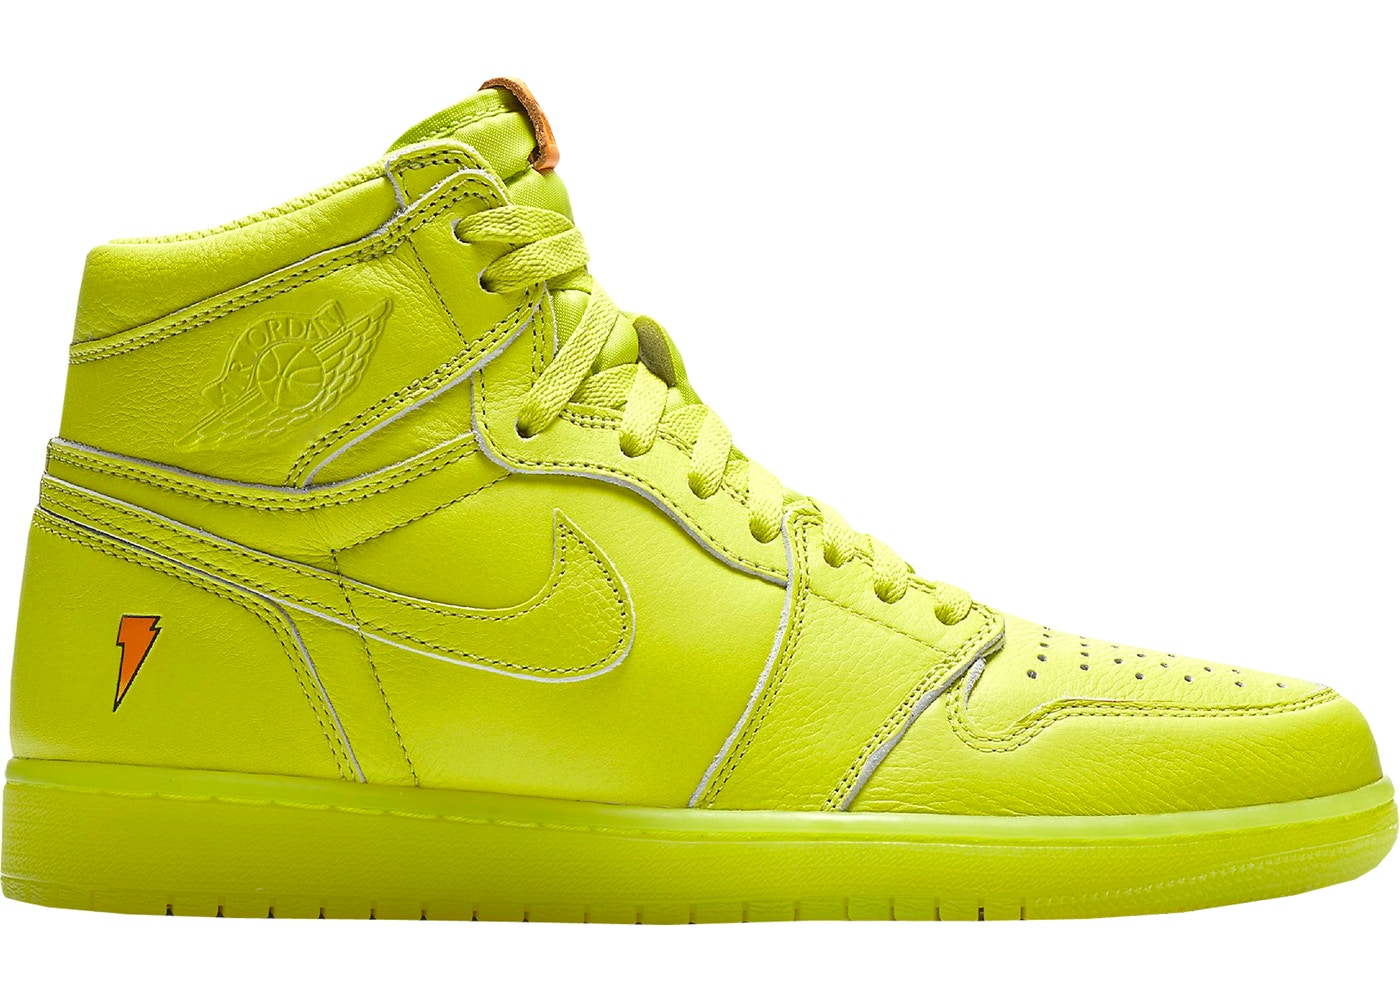 cheap for discount 650fa fb831 Jordan 1 Retro High Gatorade Cyber